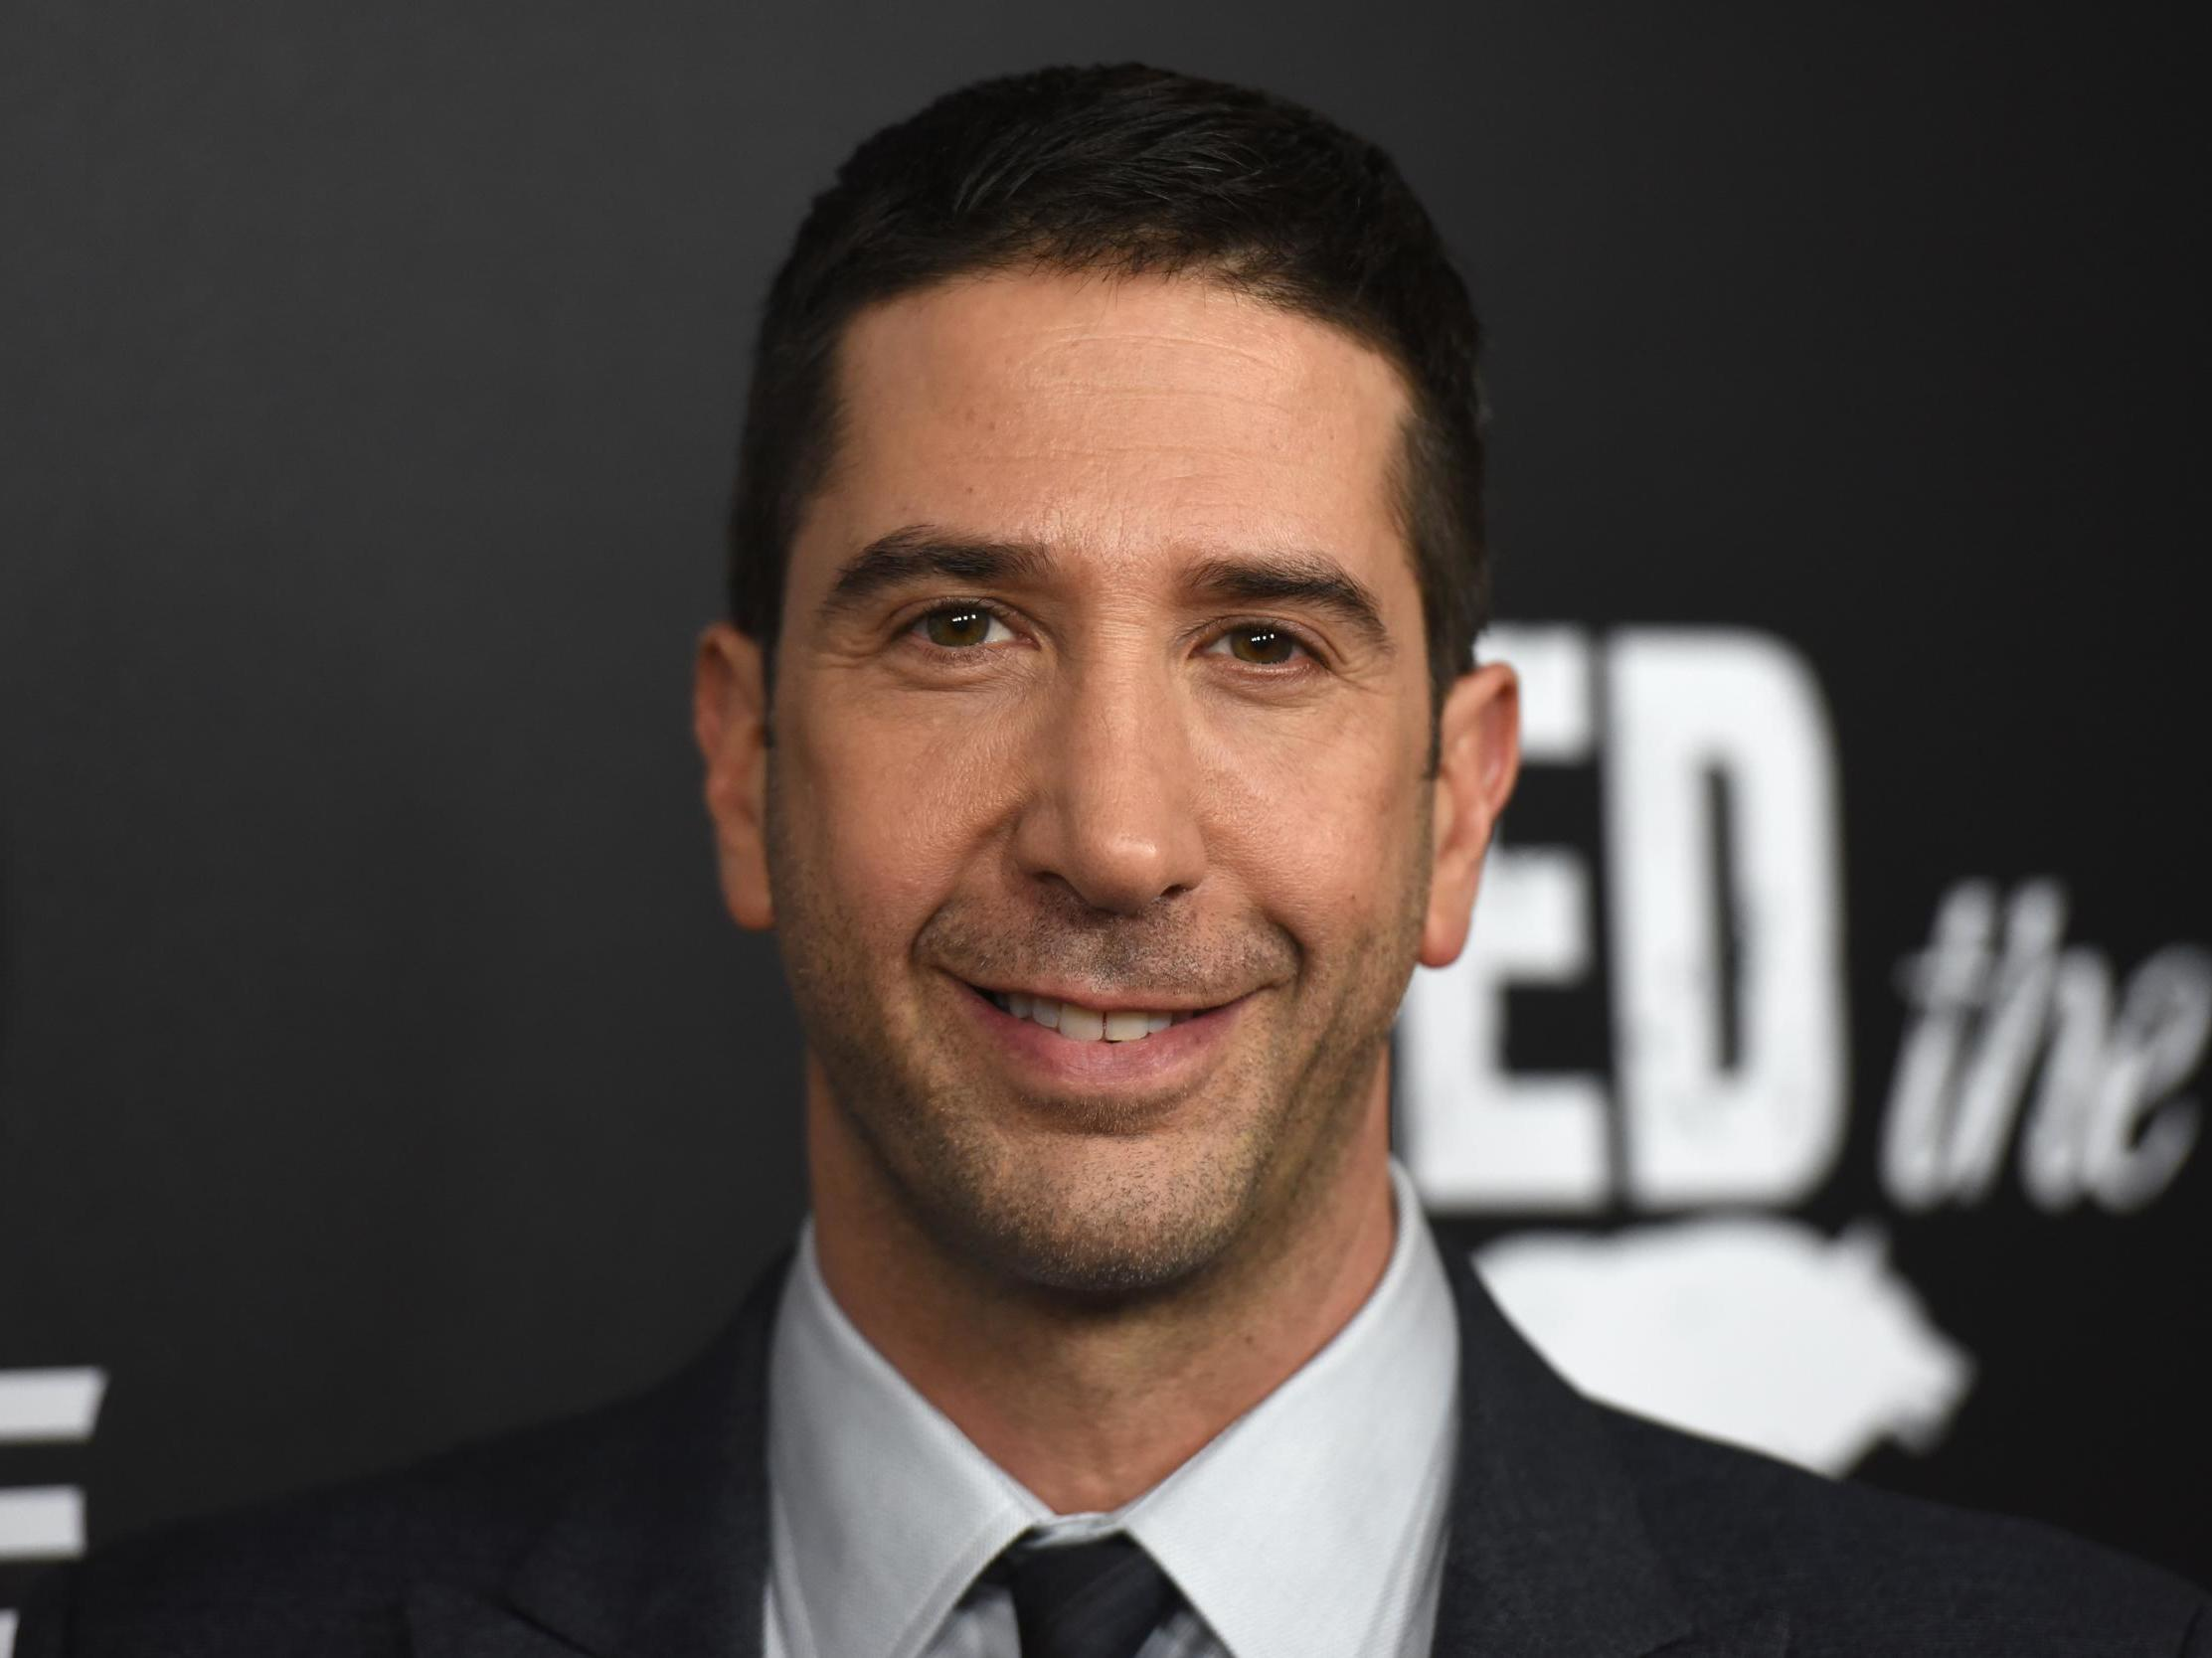 David Schwimmer says daughter is a 'self-declared vegetarian'